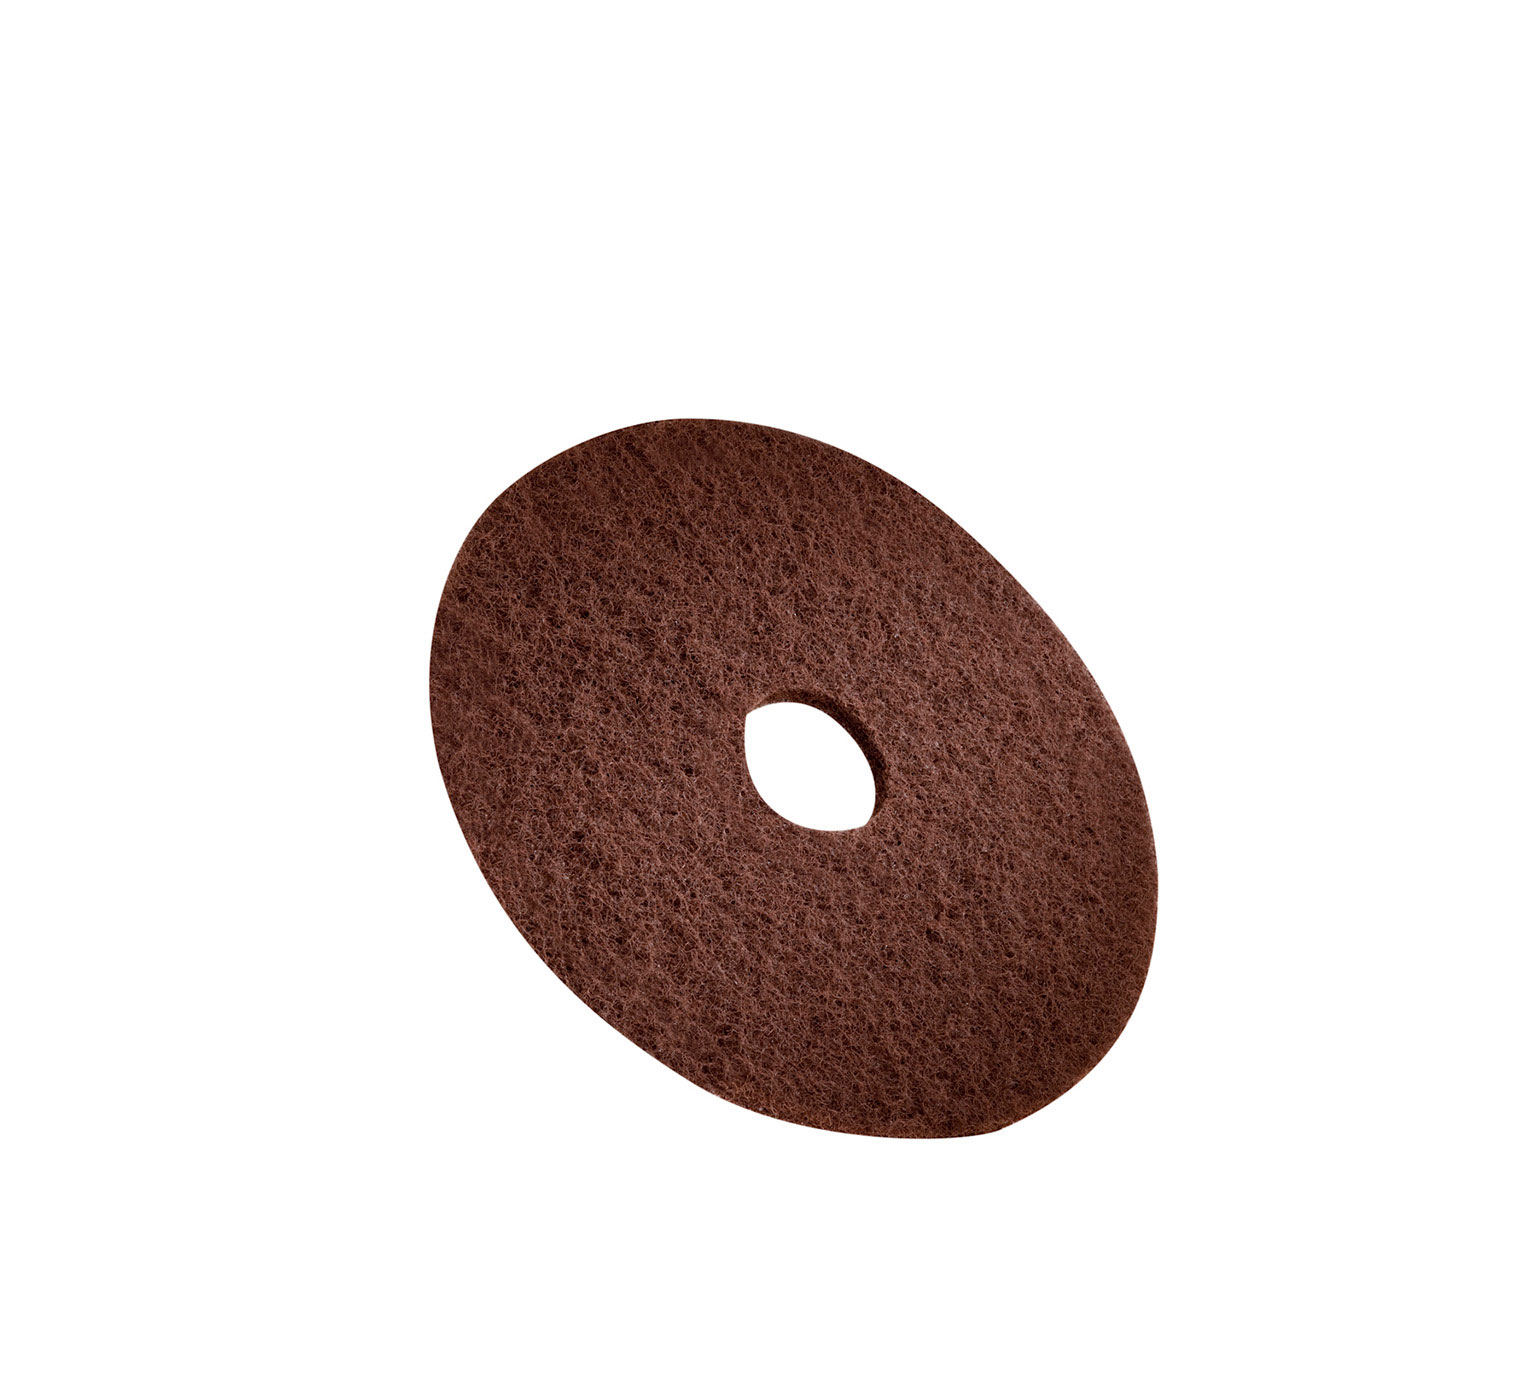 3m Brown Stripping Pad 16 In 406 Mm 63248 1